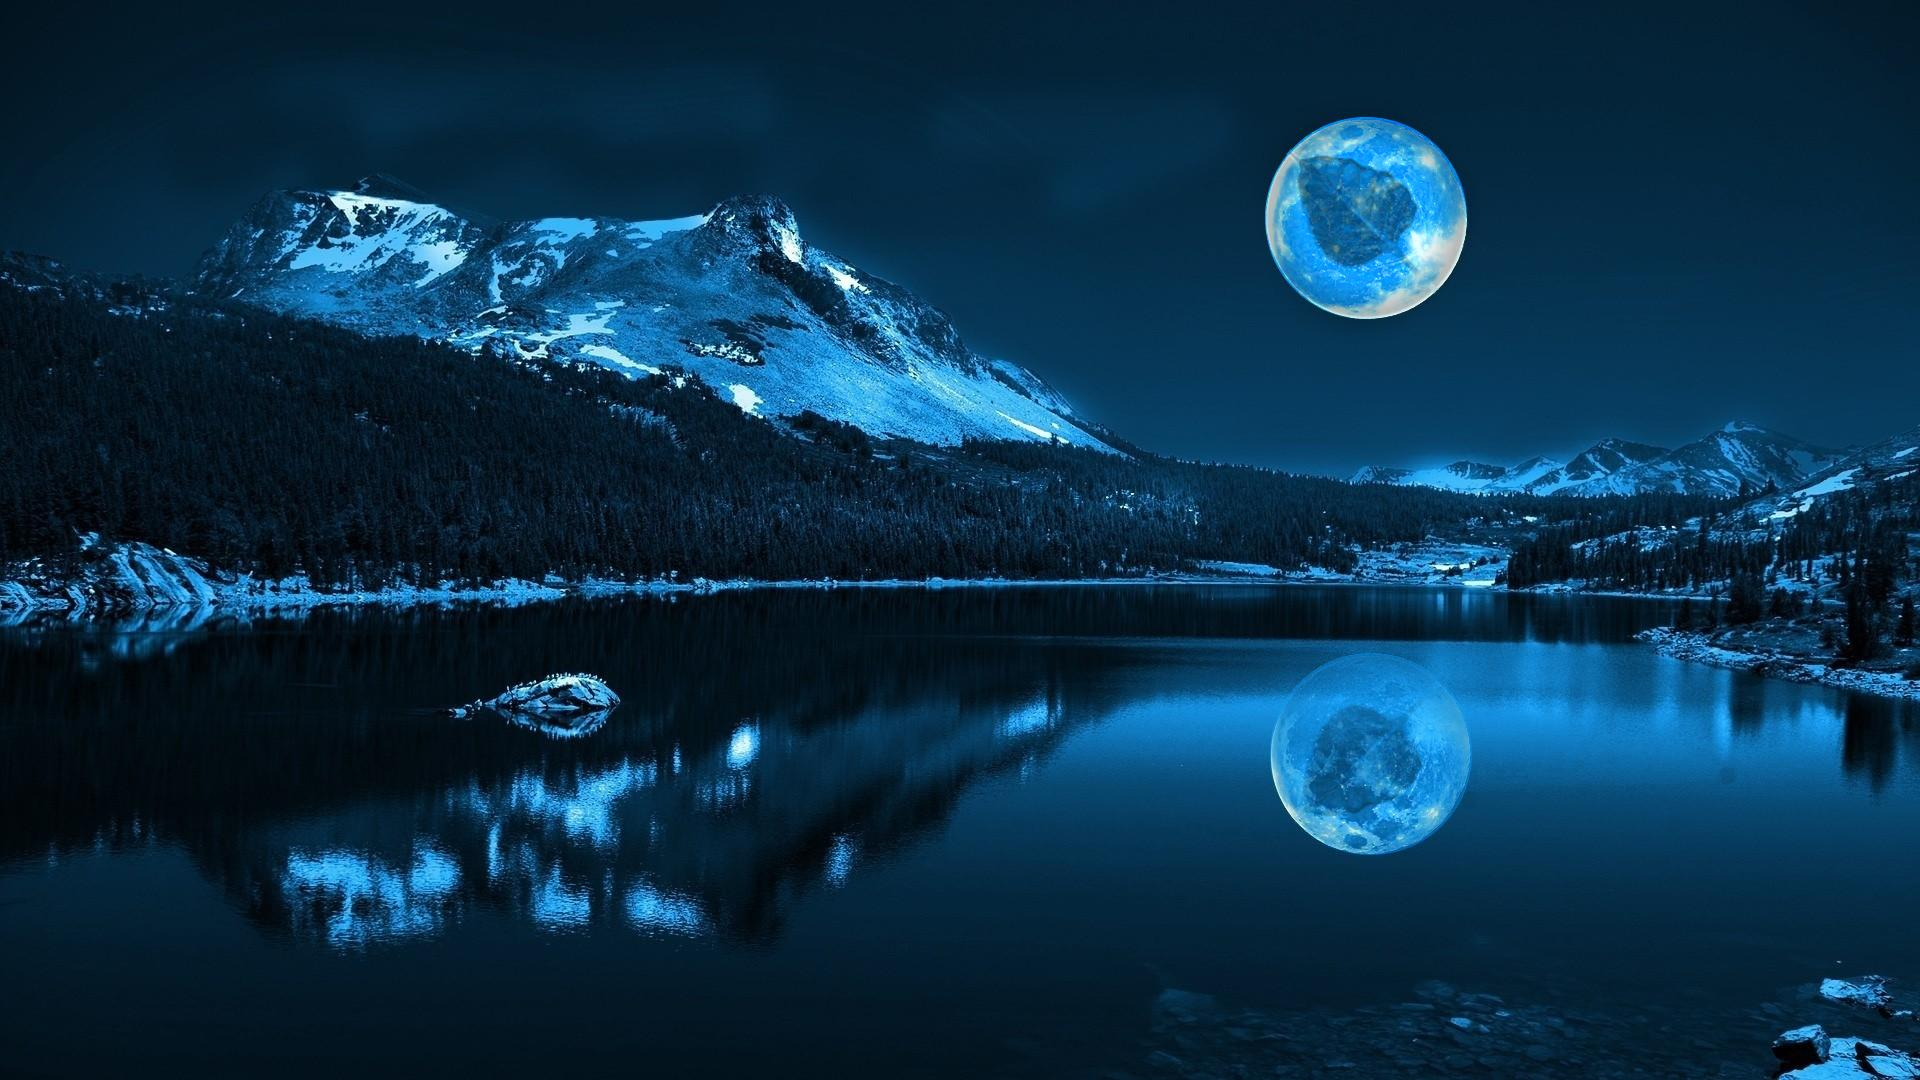 Moon Phases Wallpapers Hd Full Wallpaper Desktop Res Px 1920x1080